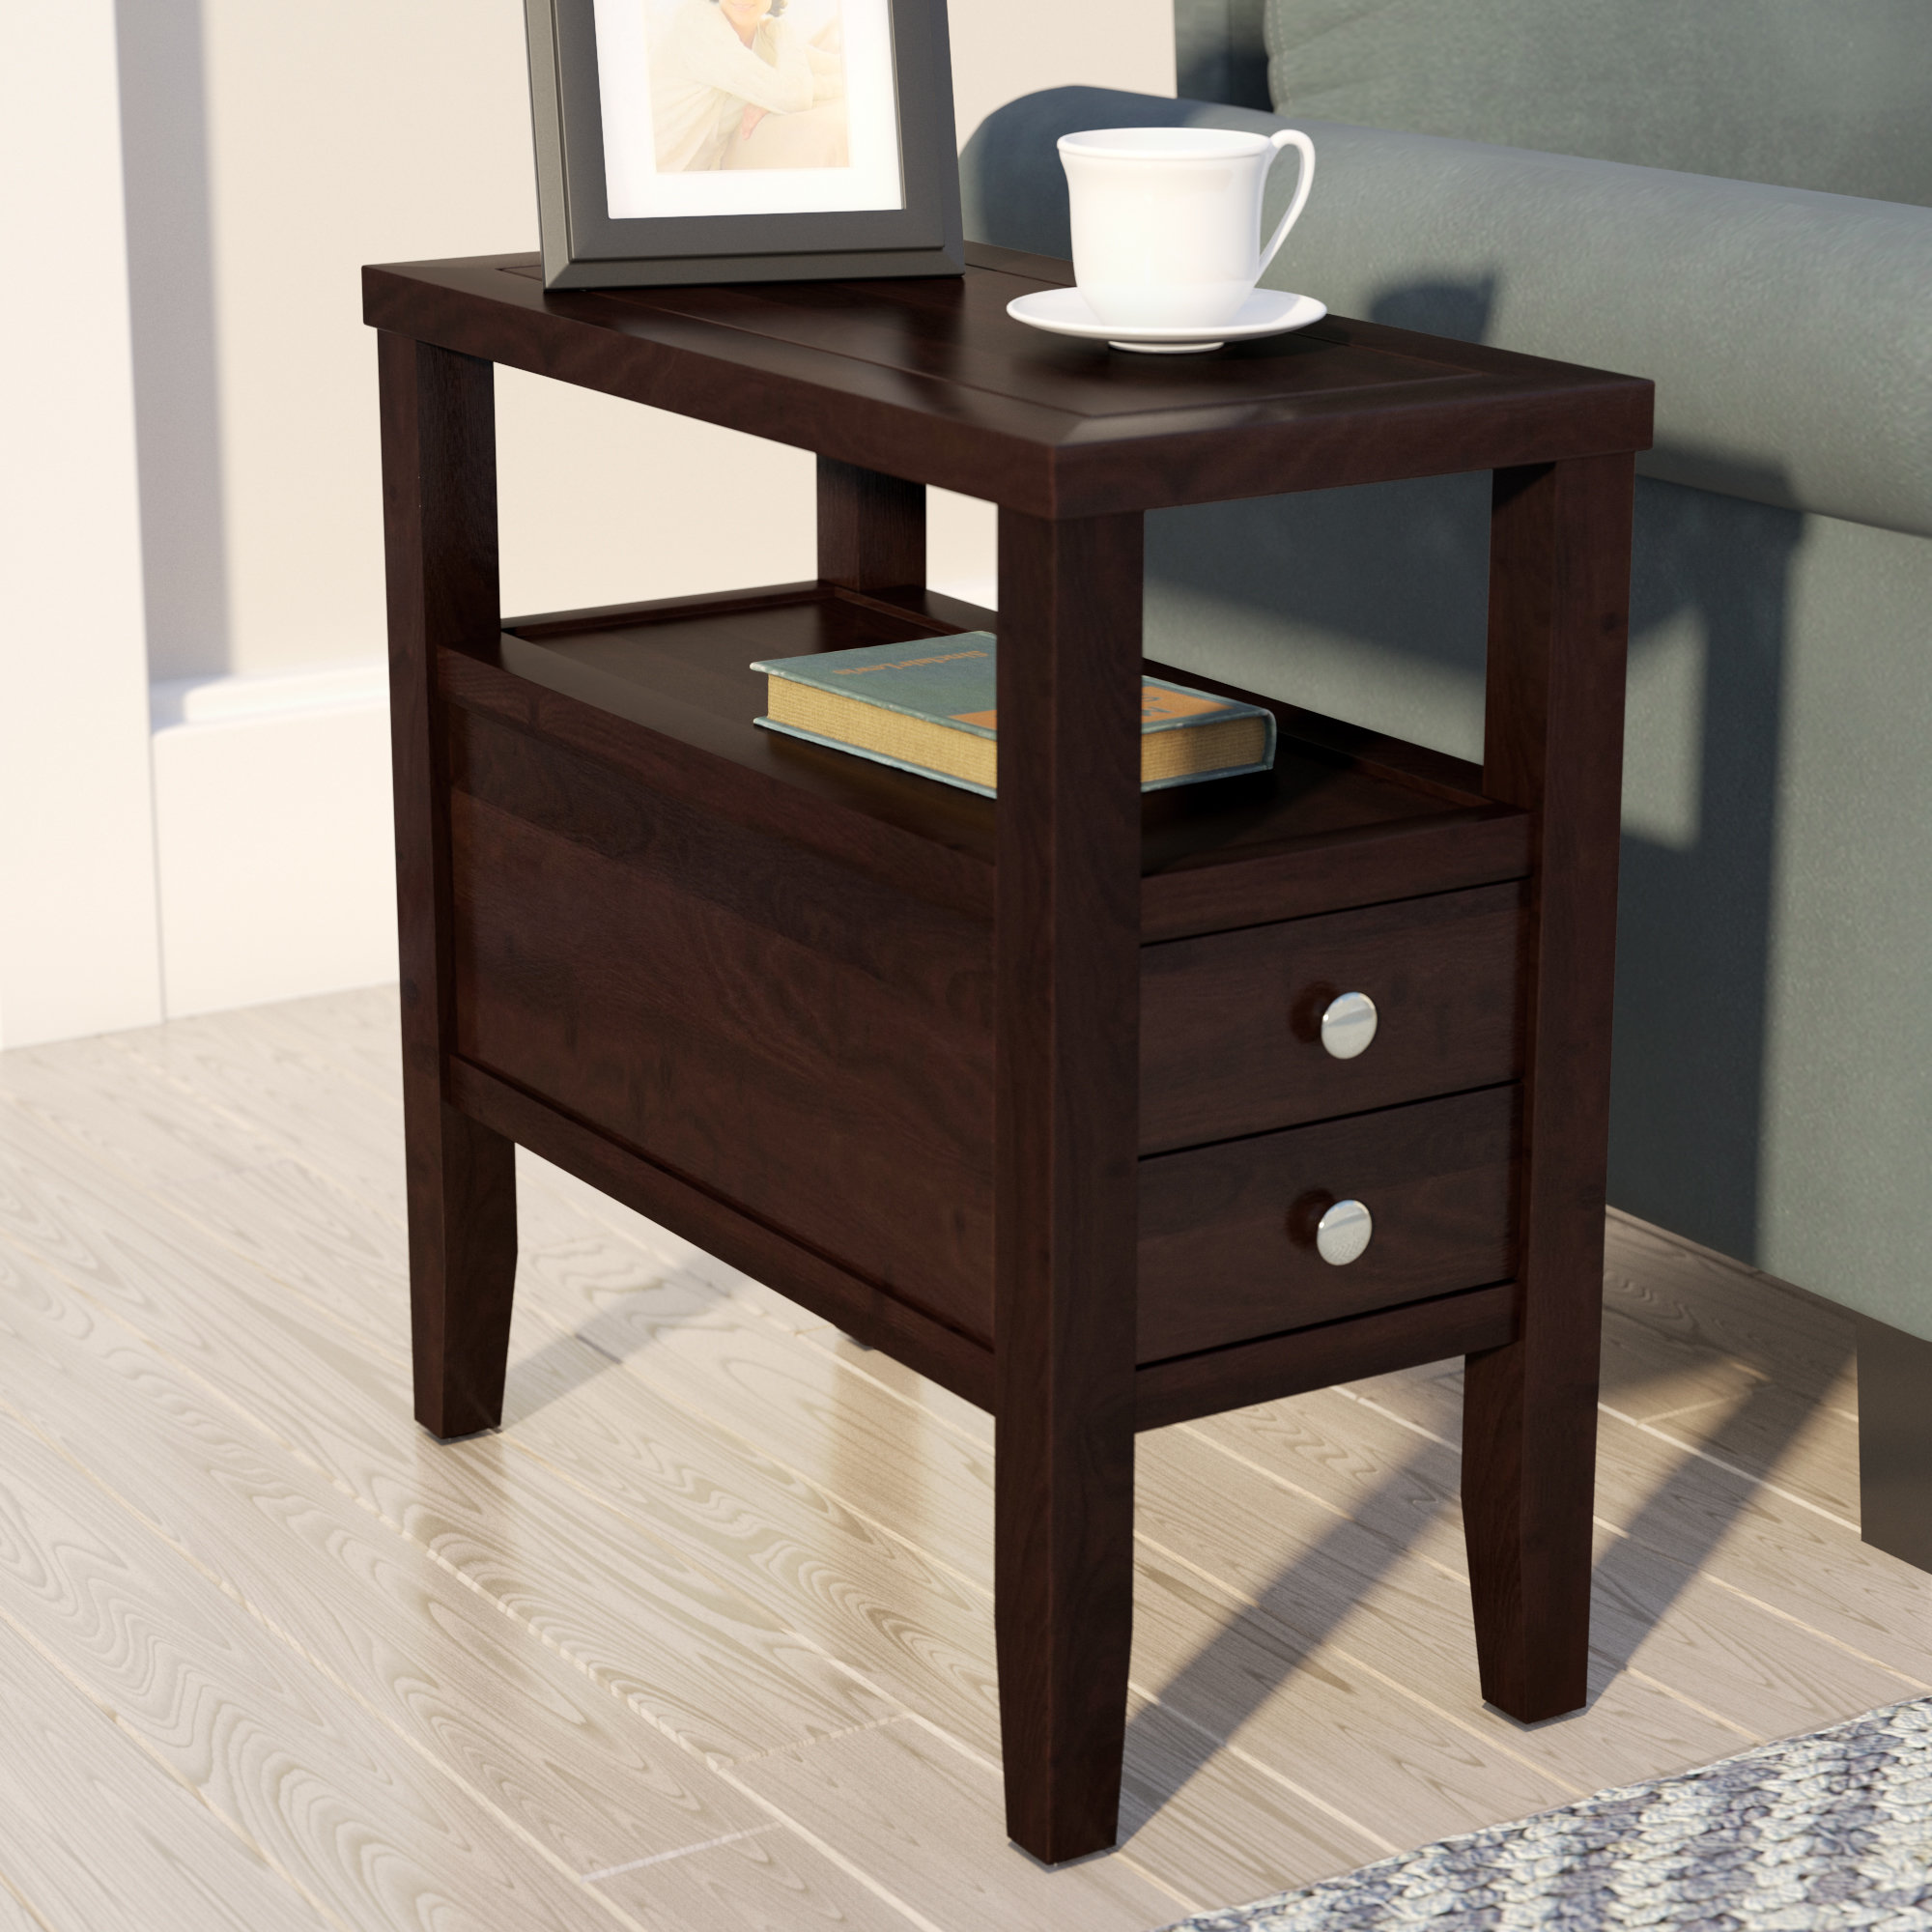 andover mills gahagan end table with storage reviews hadley accent drawer homeware decor argos coffee rustic blue round drawers tablecloth small metal patio reclaimed wood bar